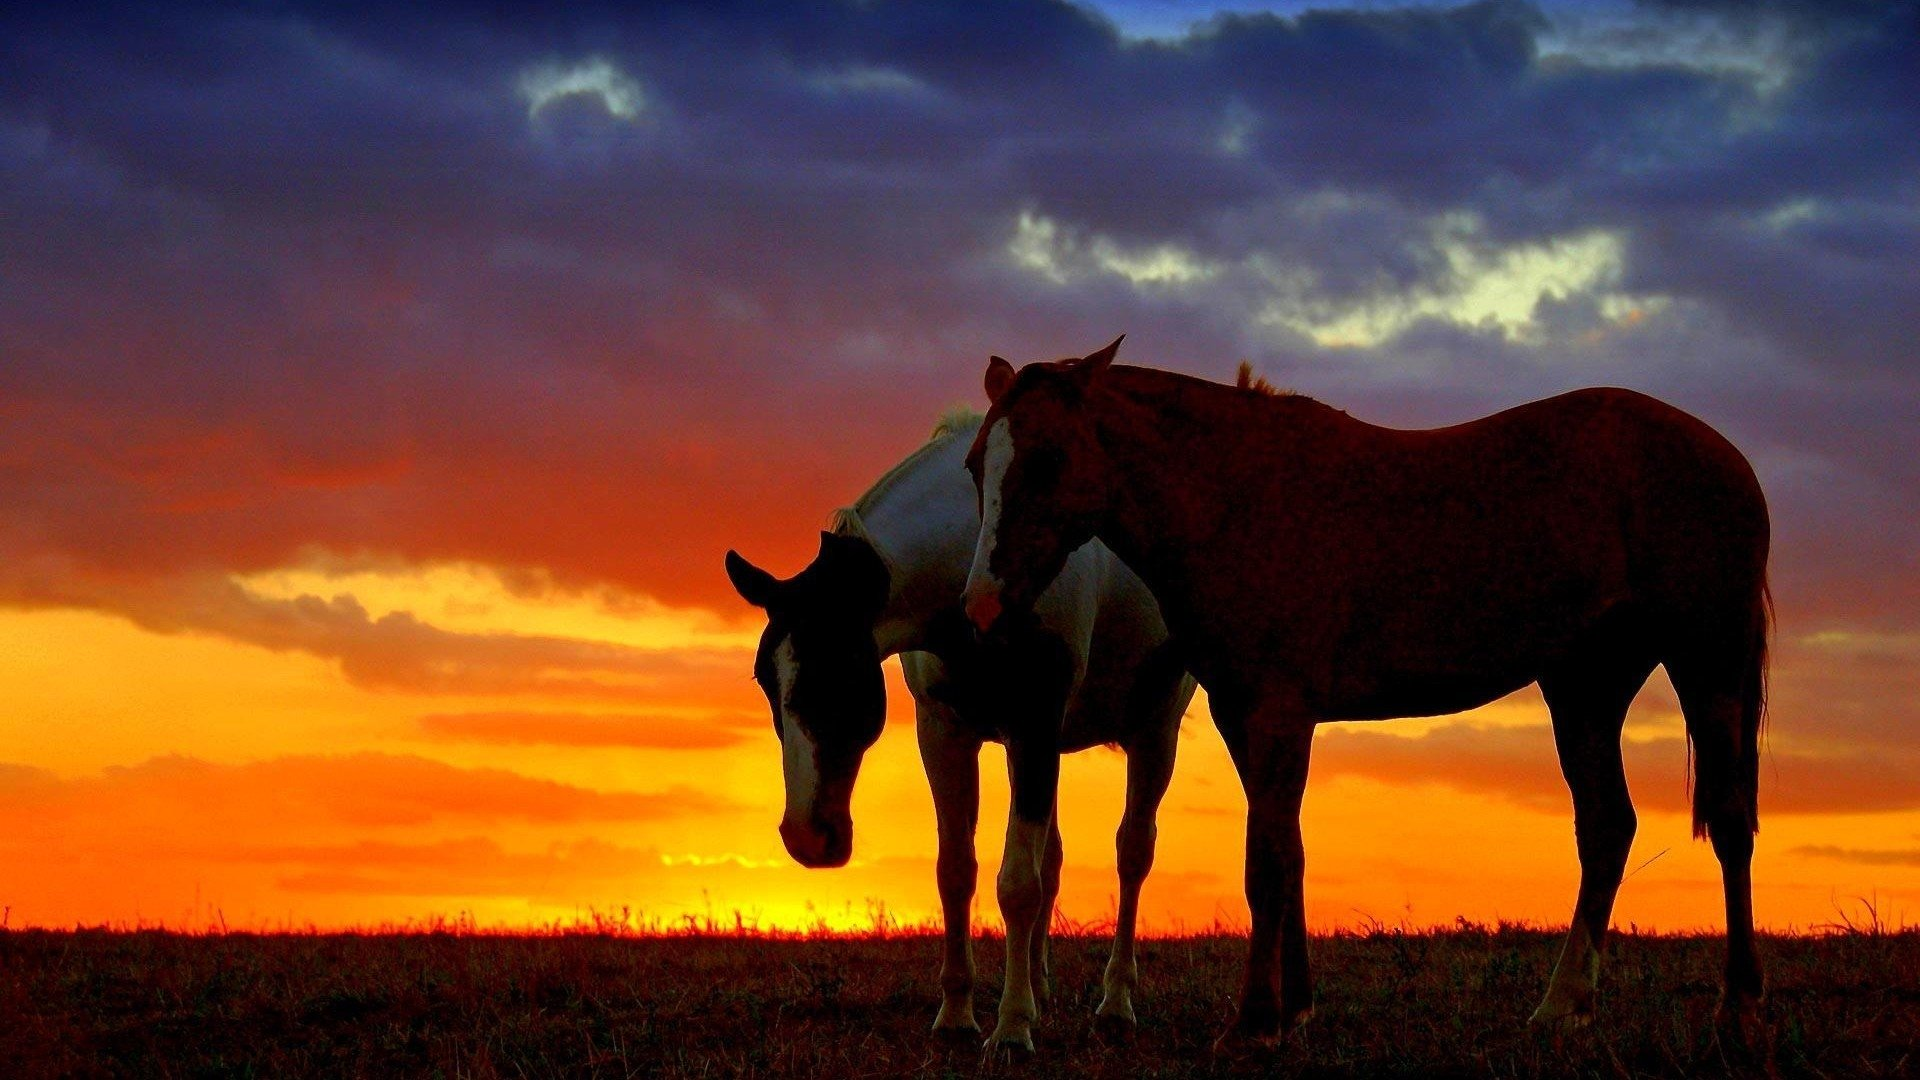 Mustang Wallpaper Iphone X Horses In The Sunset Hd Wallpaper Hintergrund